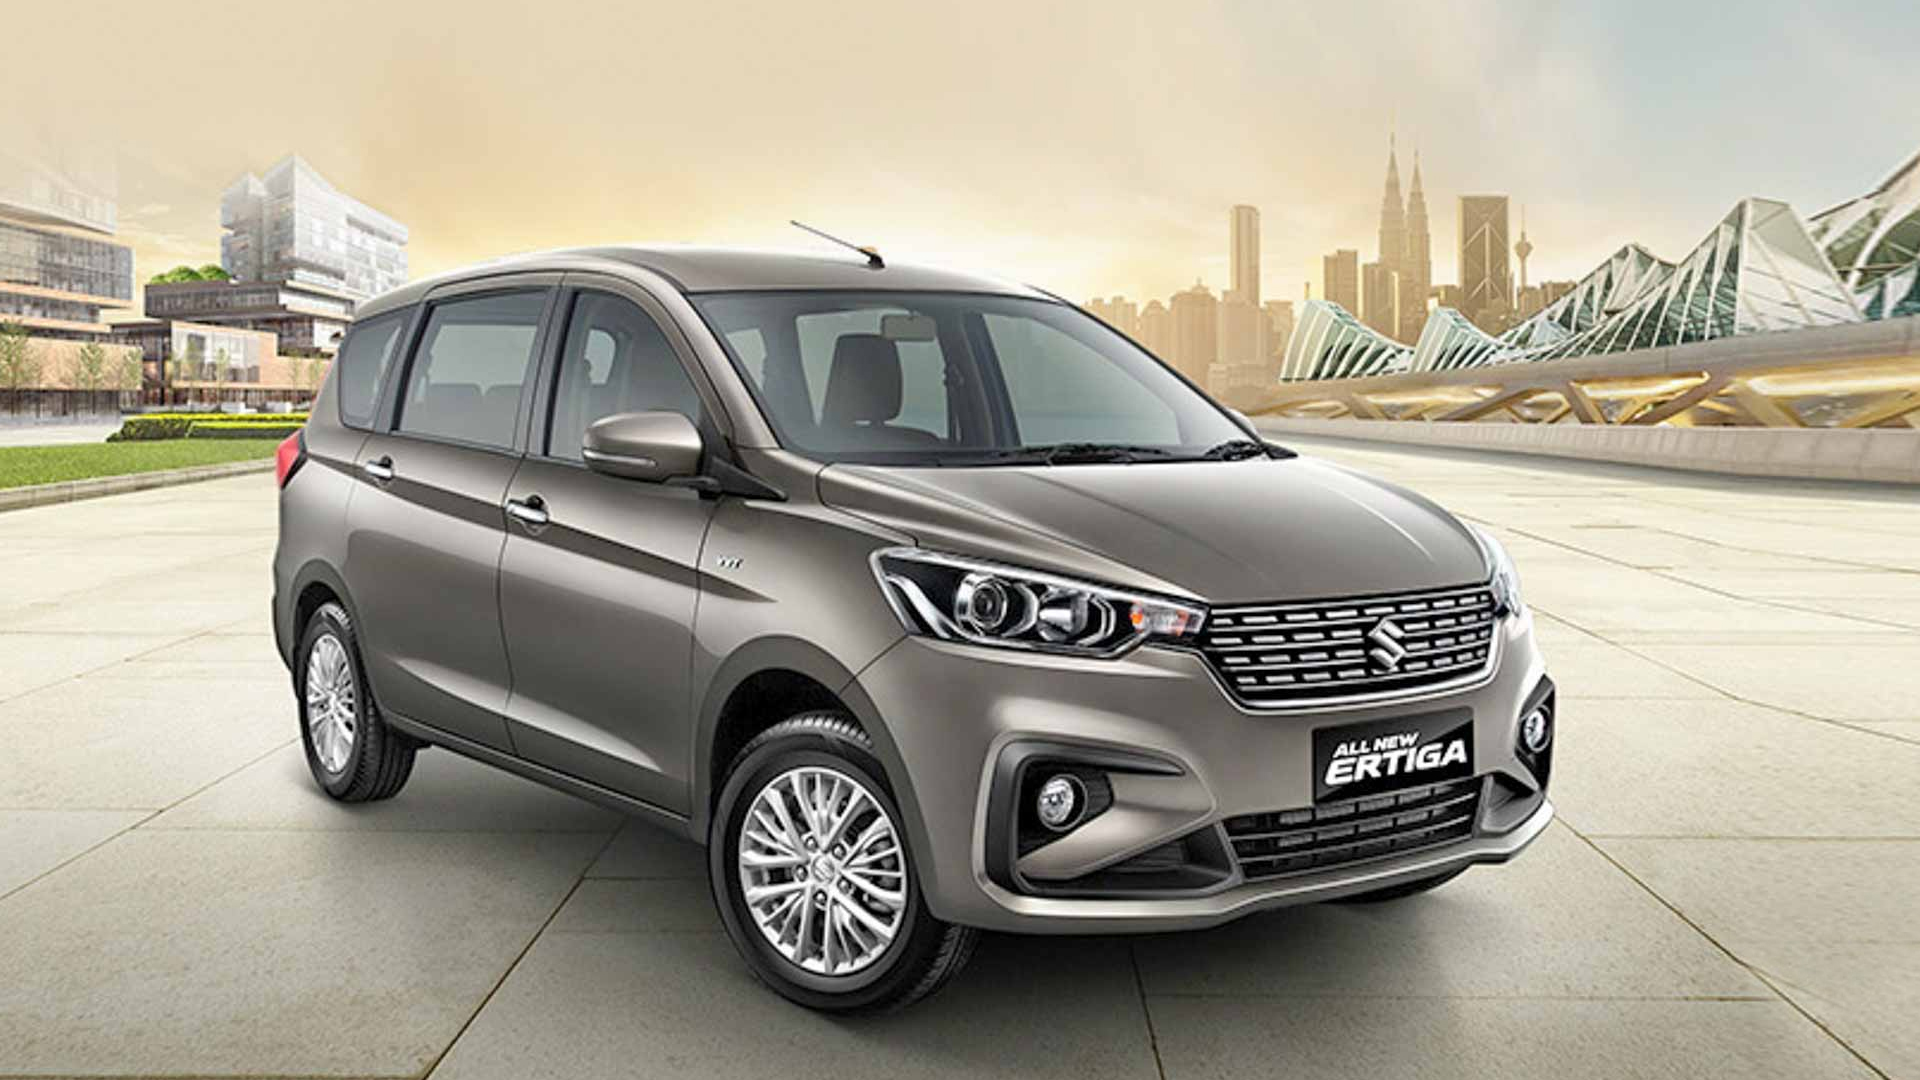 Maruti Suzuki Ertiga 2018: Things You Must Know Before Buying